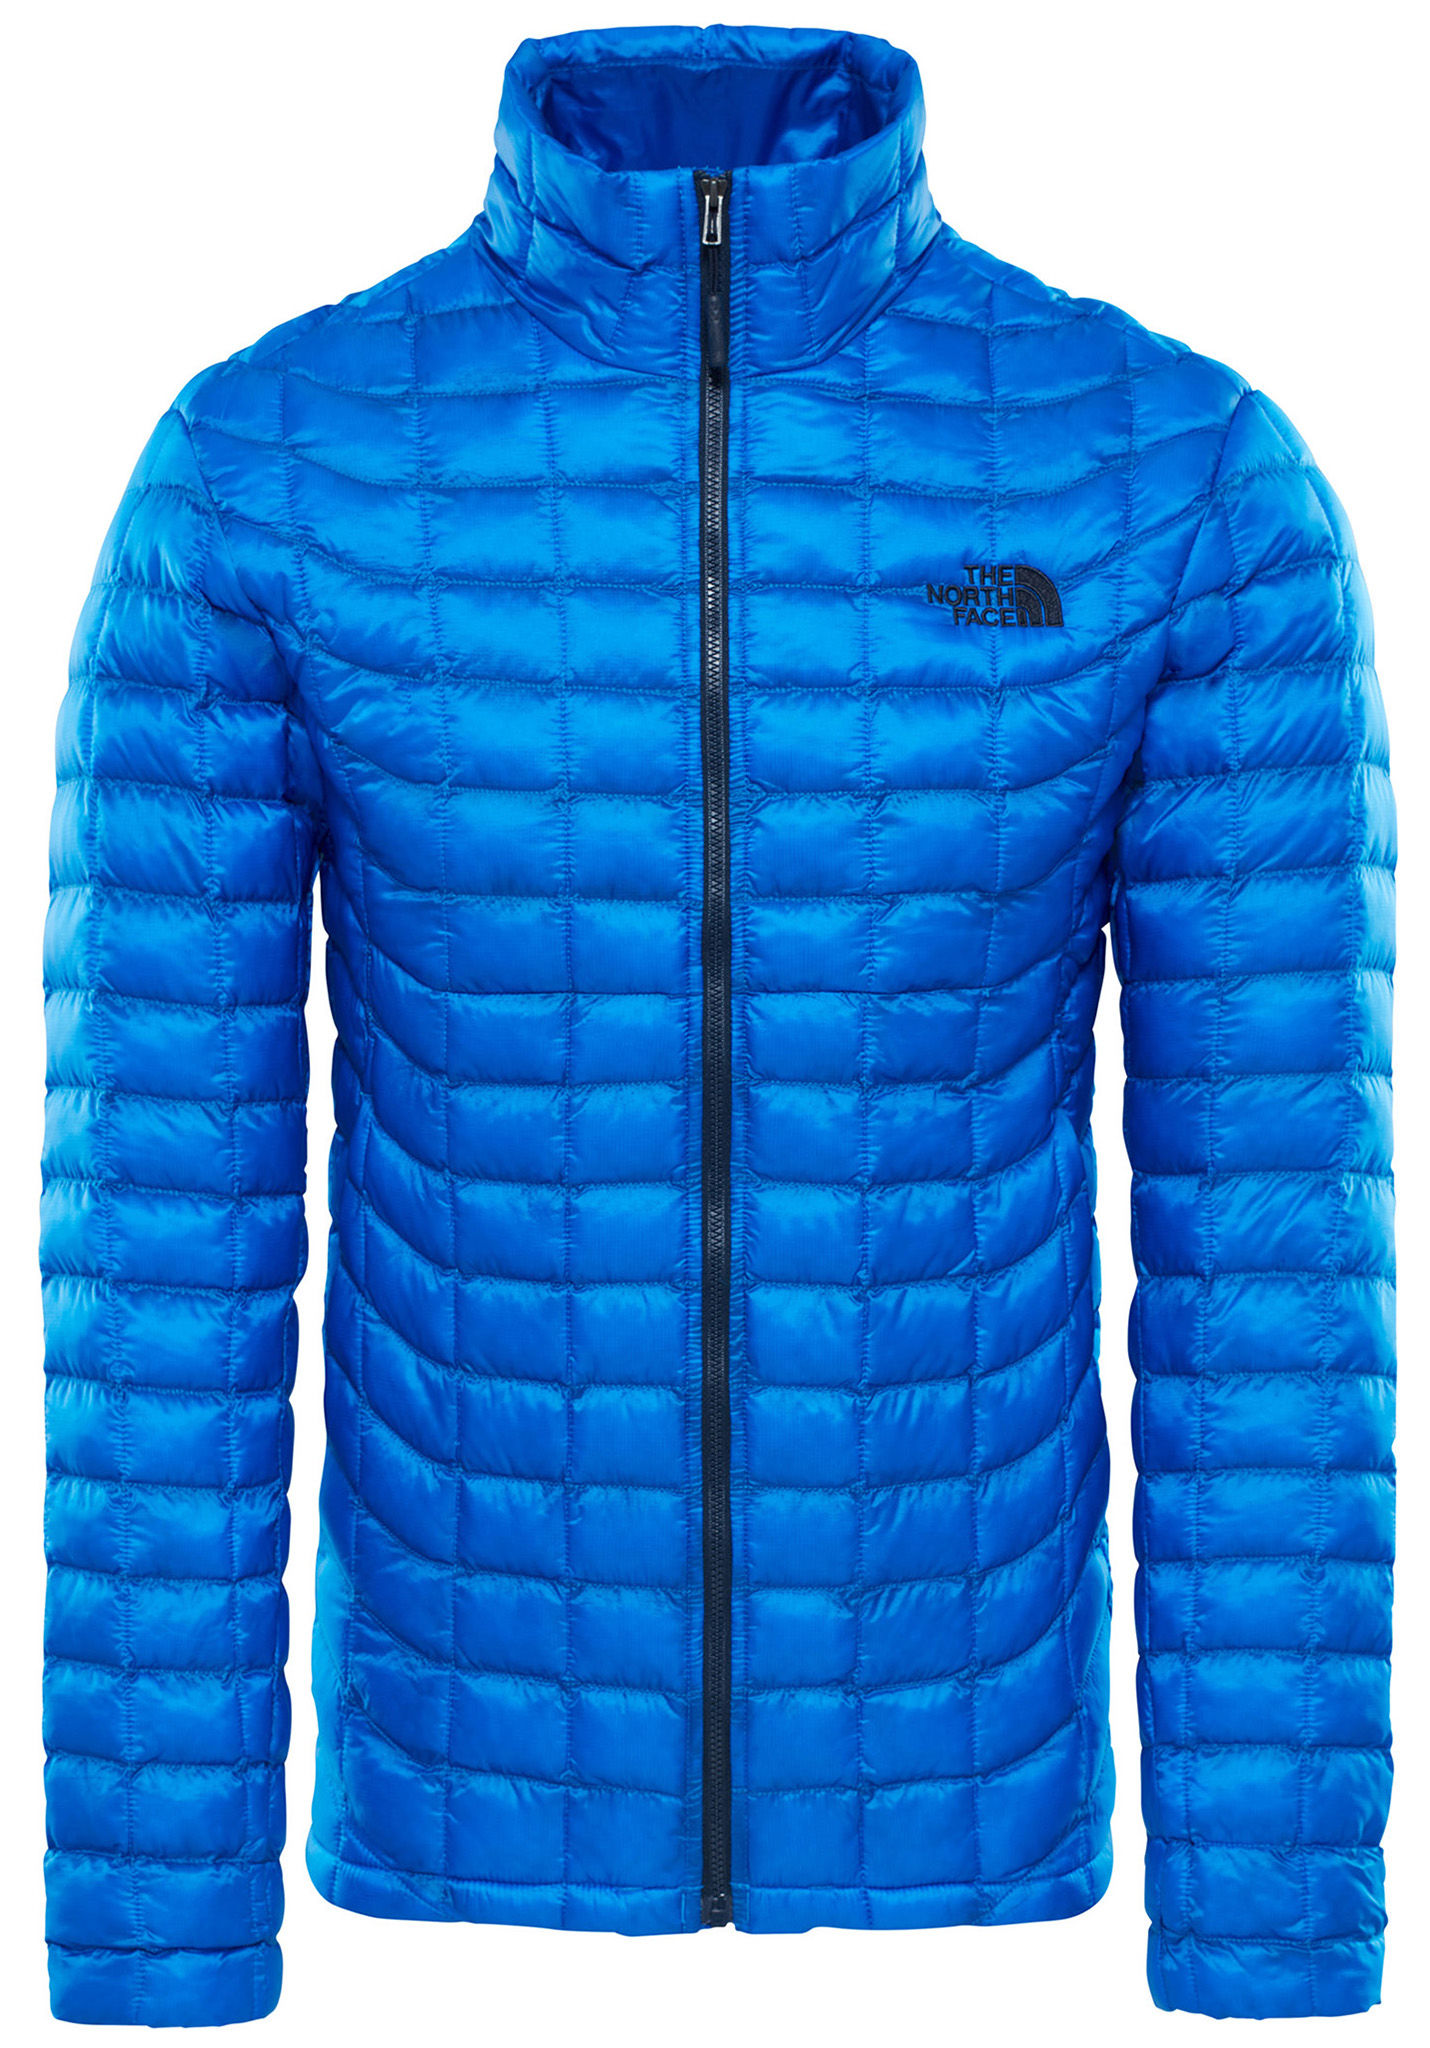 8d0fb8485 THE NORTH FACE Thermoball - Outdoor Jacket for Men - Blue